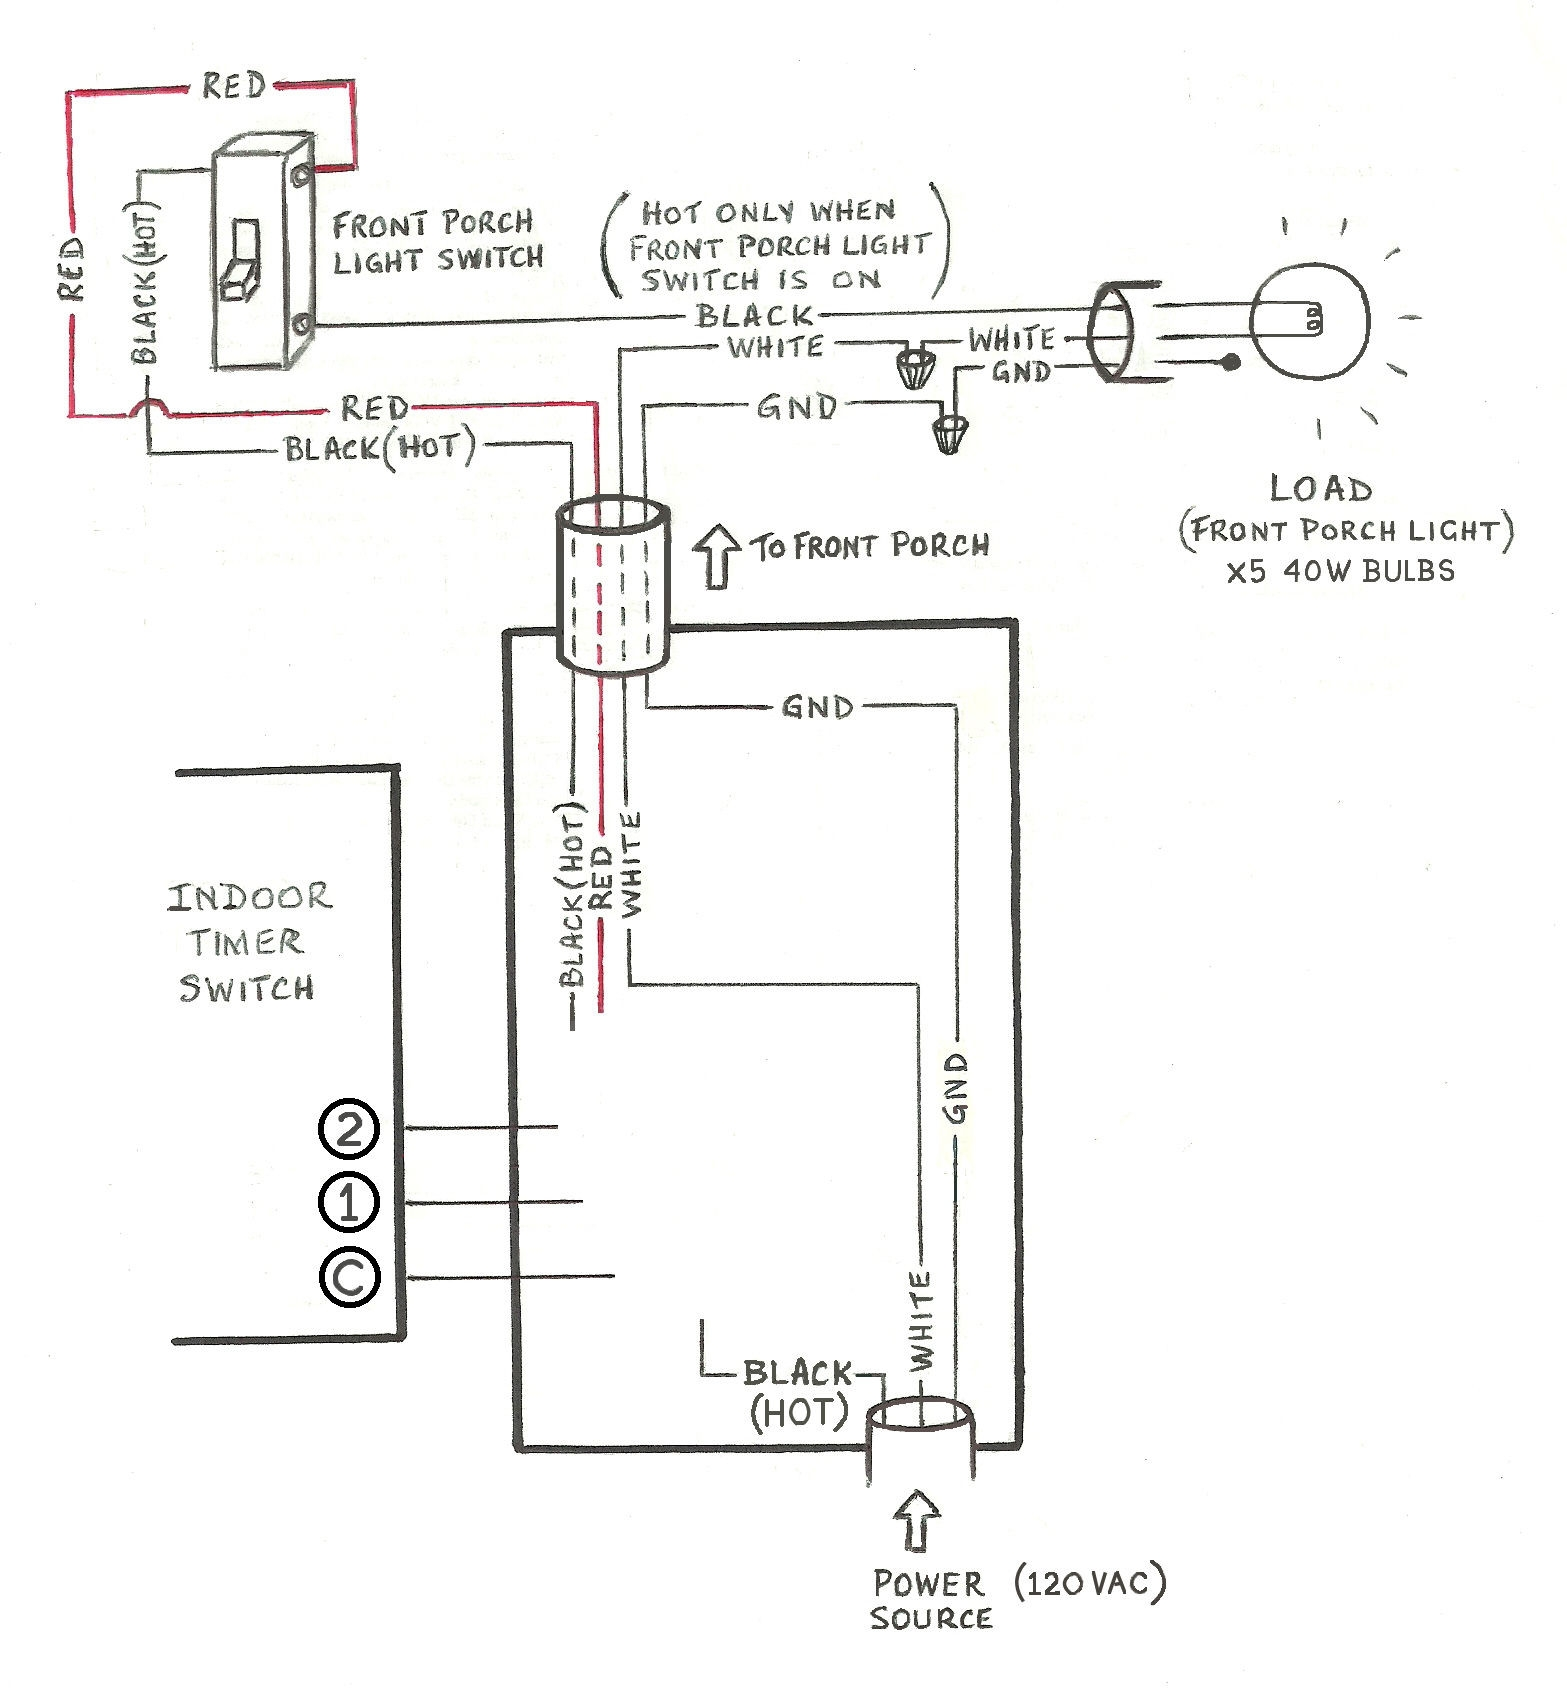 porch light switch wiring diagram wiring diagram rh jh pool de  rv porch light wiring diagram